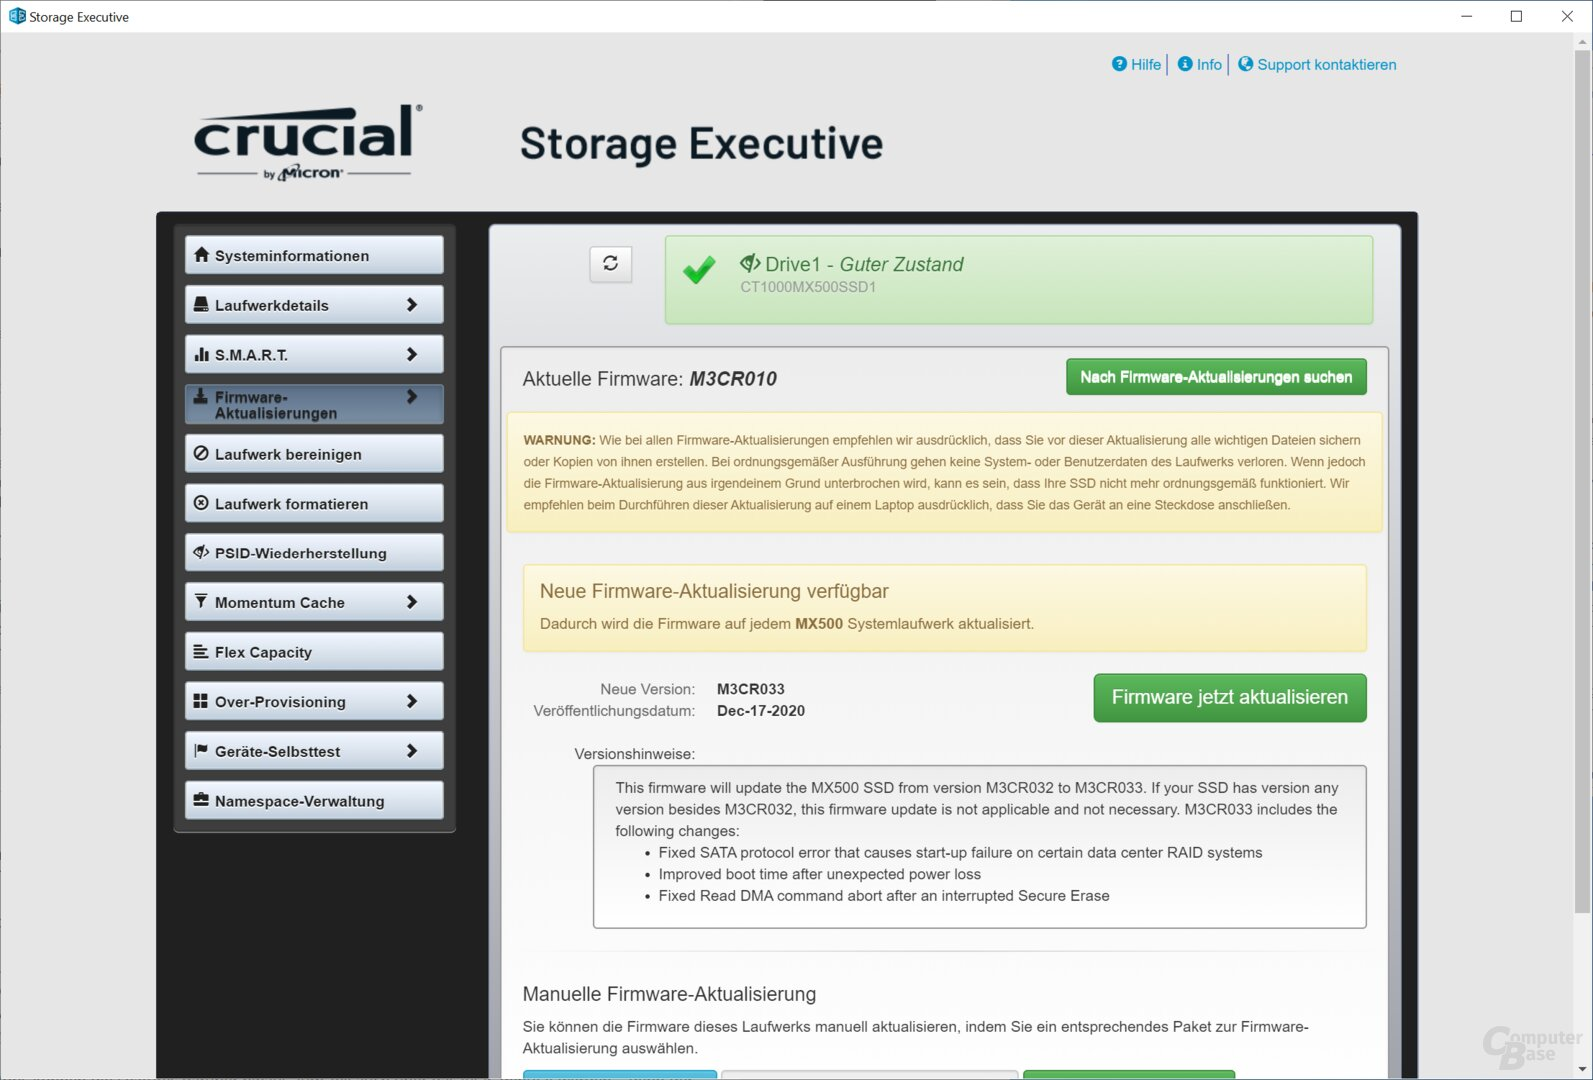 Crucial Storage Executive will die M3CR033 installieren